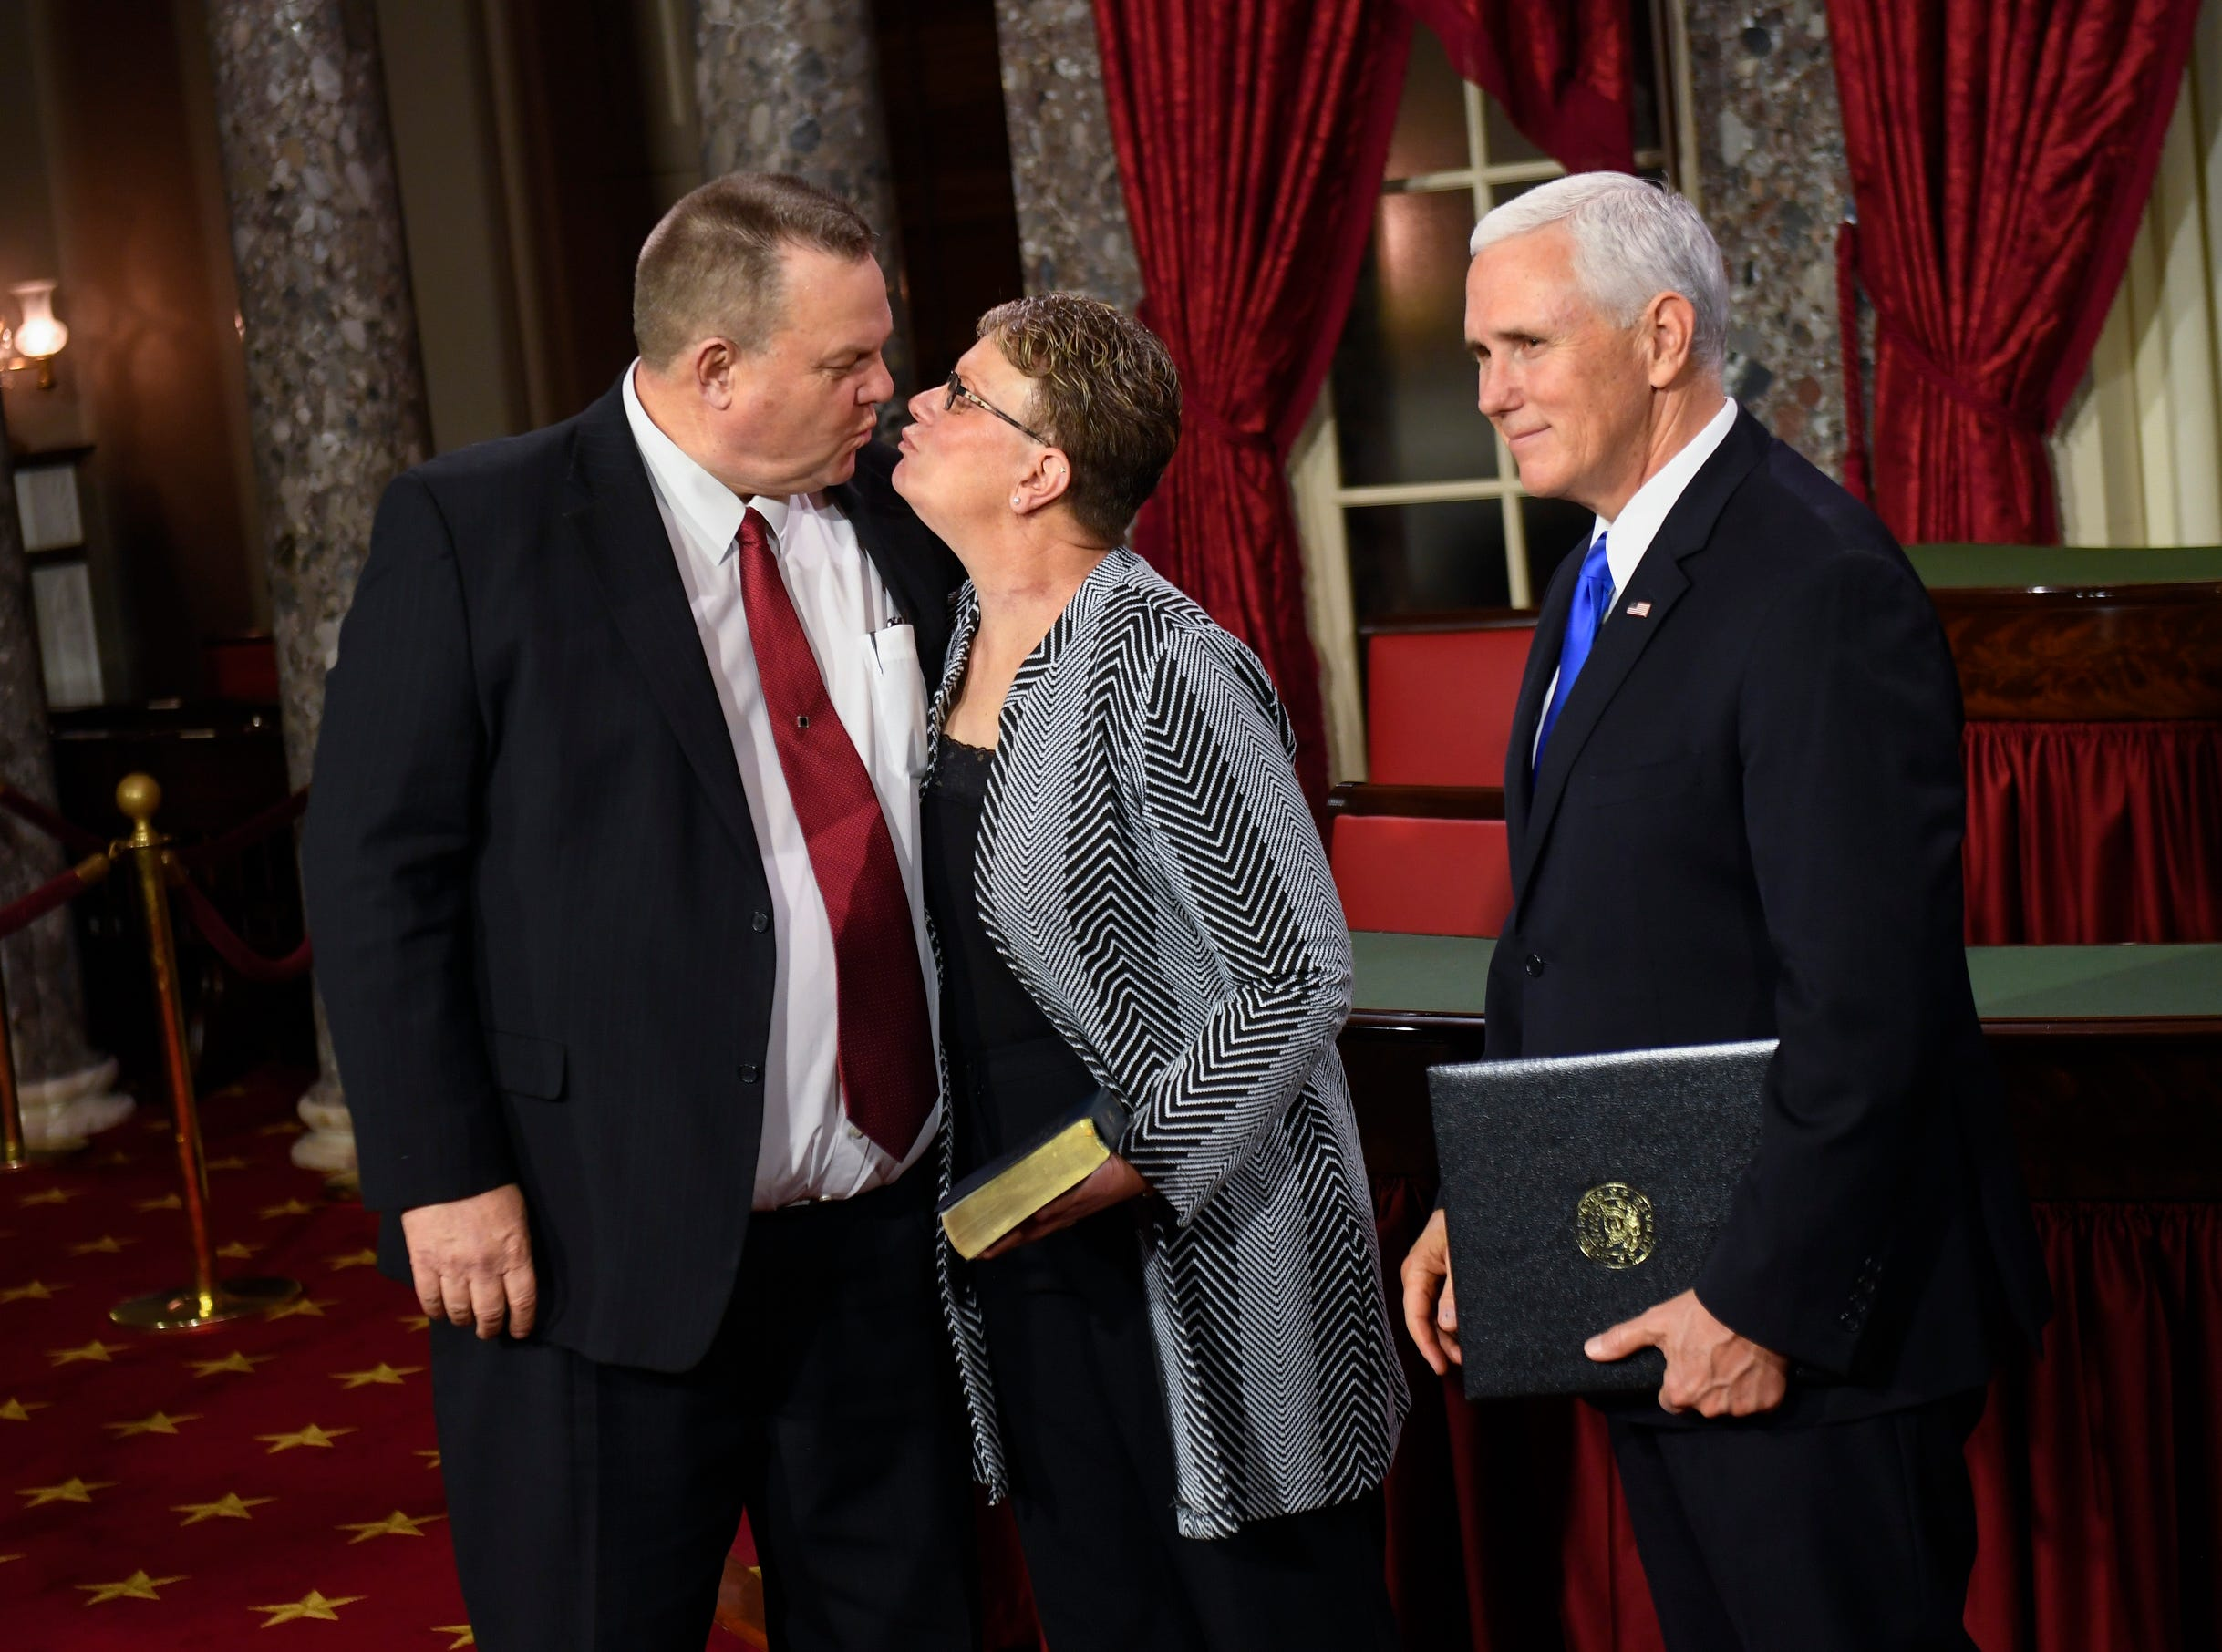 Senator Jon Tester (D-Montana) gets some love from his wife Sharla Tester, as Vice President Mike Pence the officiates swearing in ceremony.